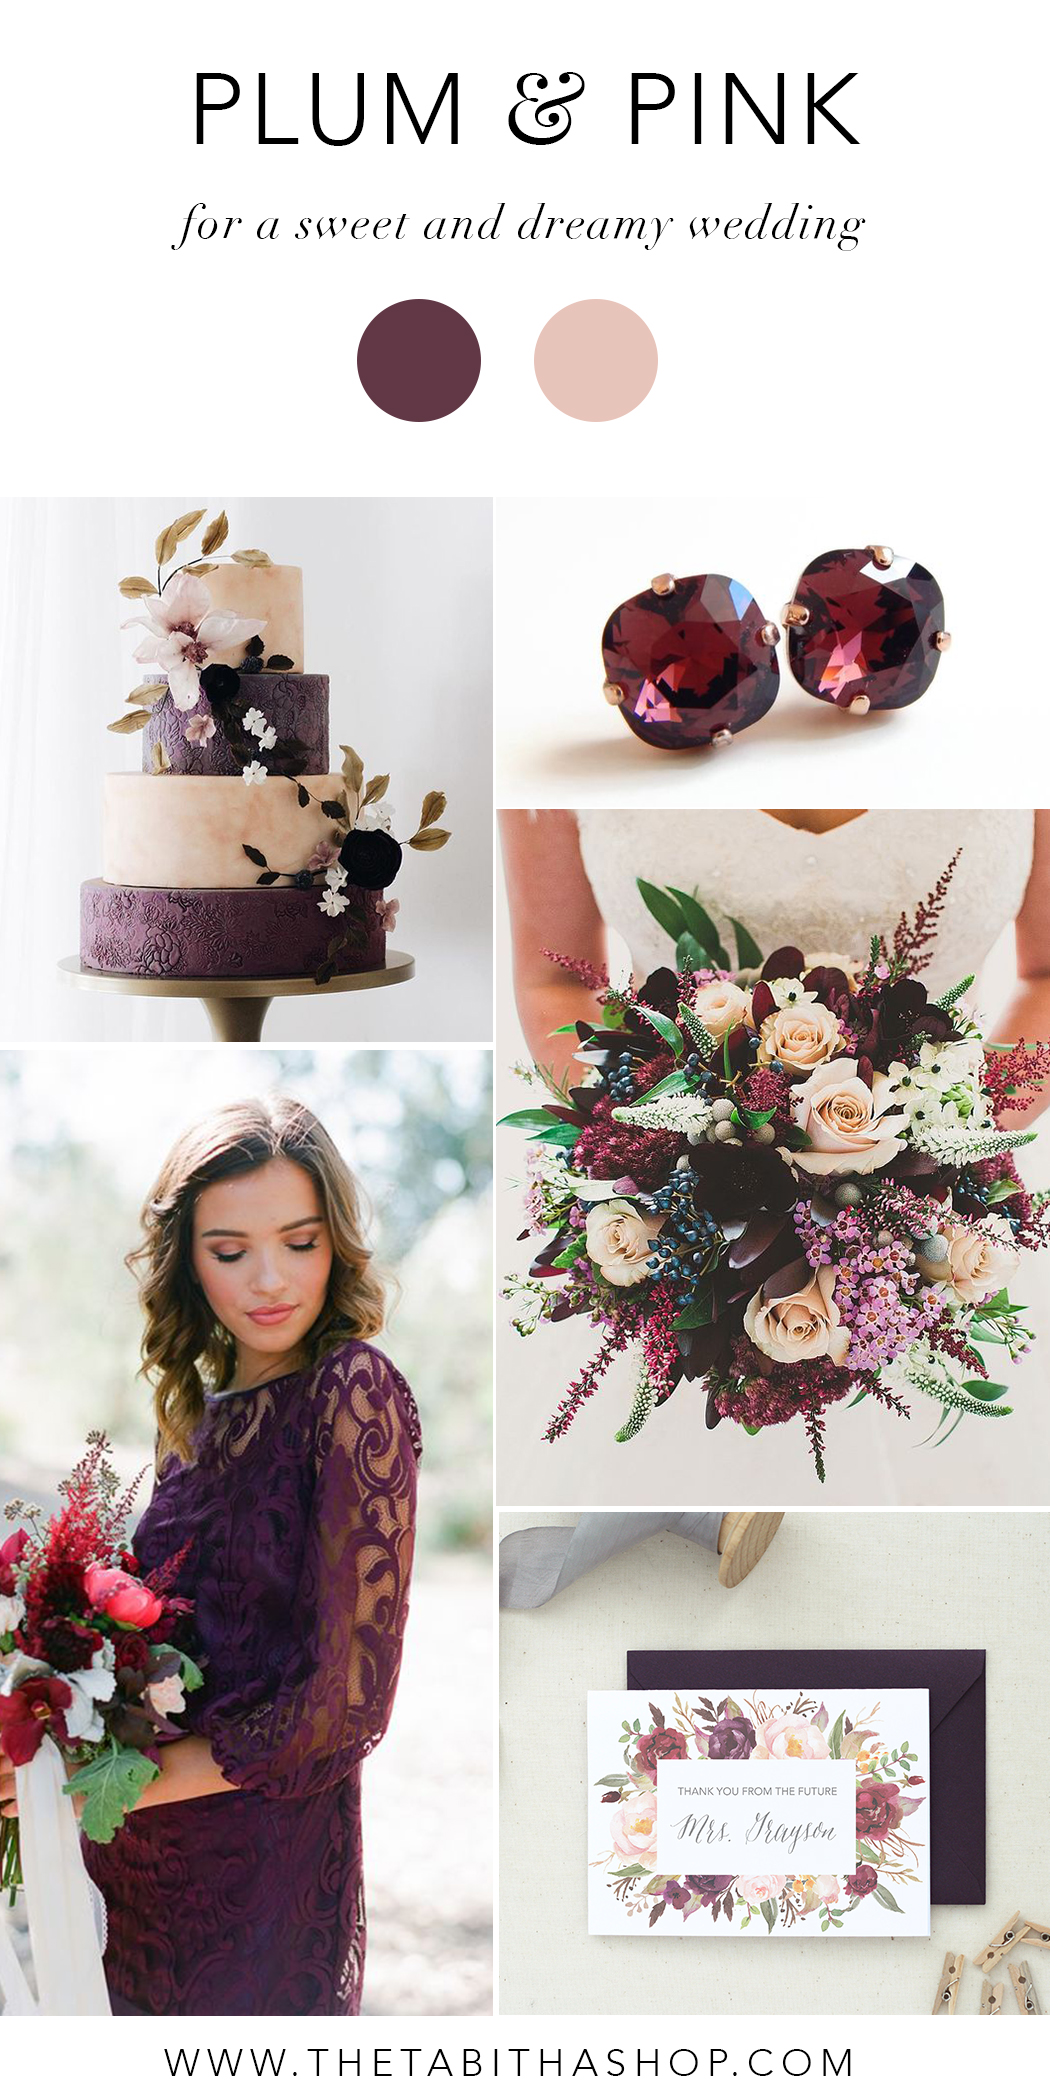 Clockwise, starting top left: Cake via Pinterest // Earrings by  Love Your Bling  // Photo by Mike & Emma Bowering via  Brides Up North  //  Personalized Future Mrs Card by The Tabitha Shop  // Florals by  Anna Le Pen Taylor